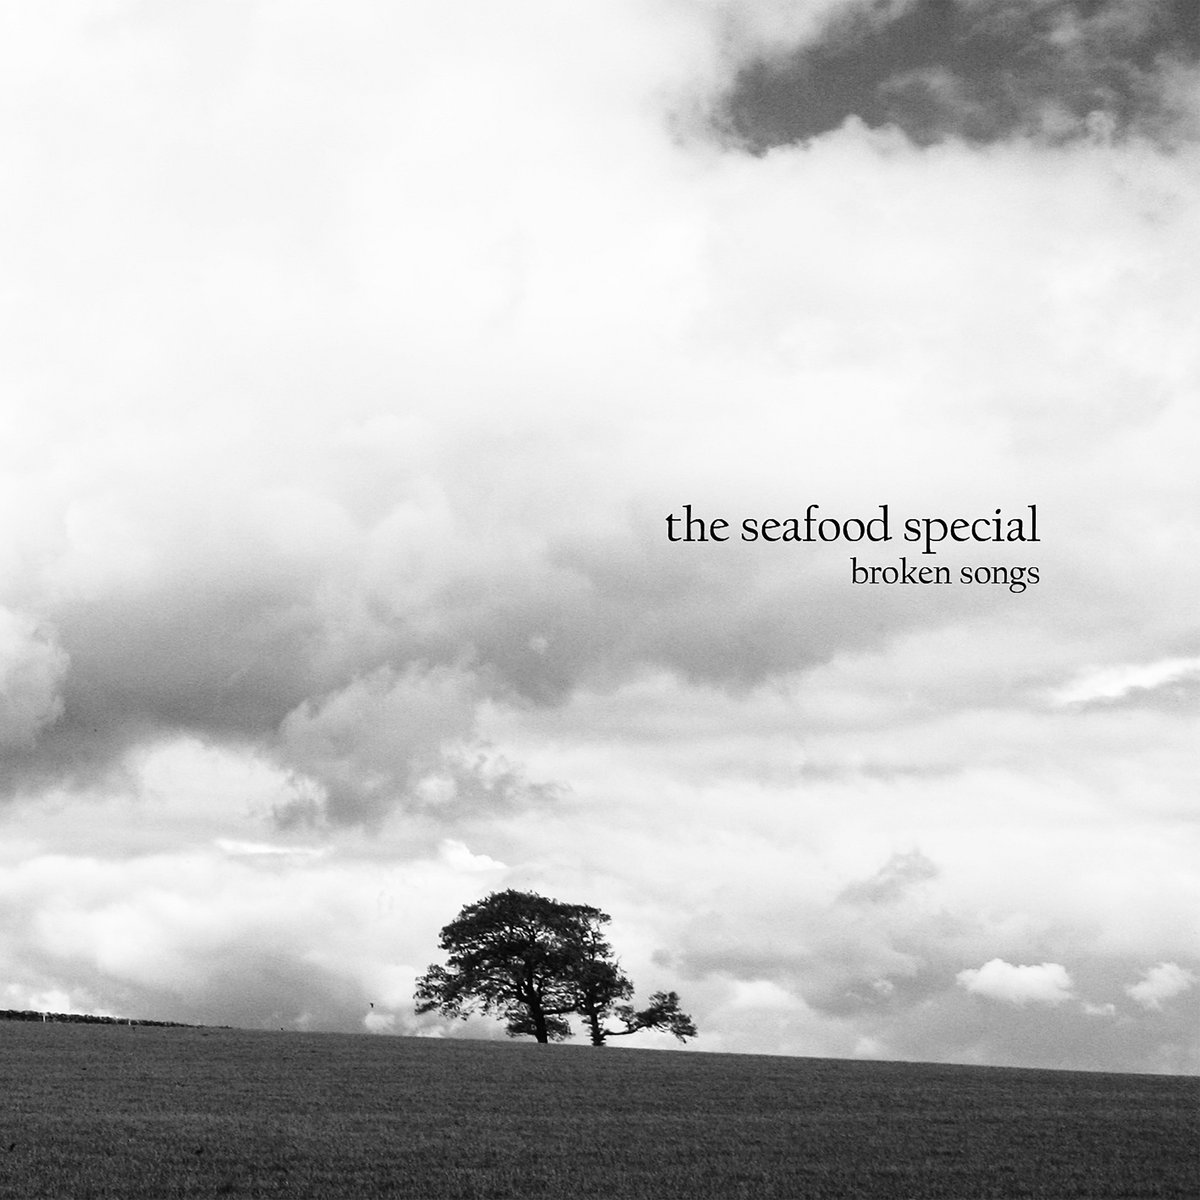 The Seafood Special - Broken Songs